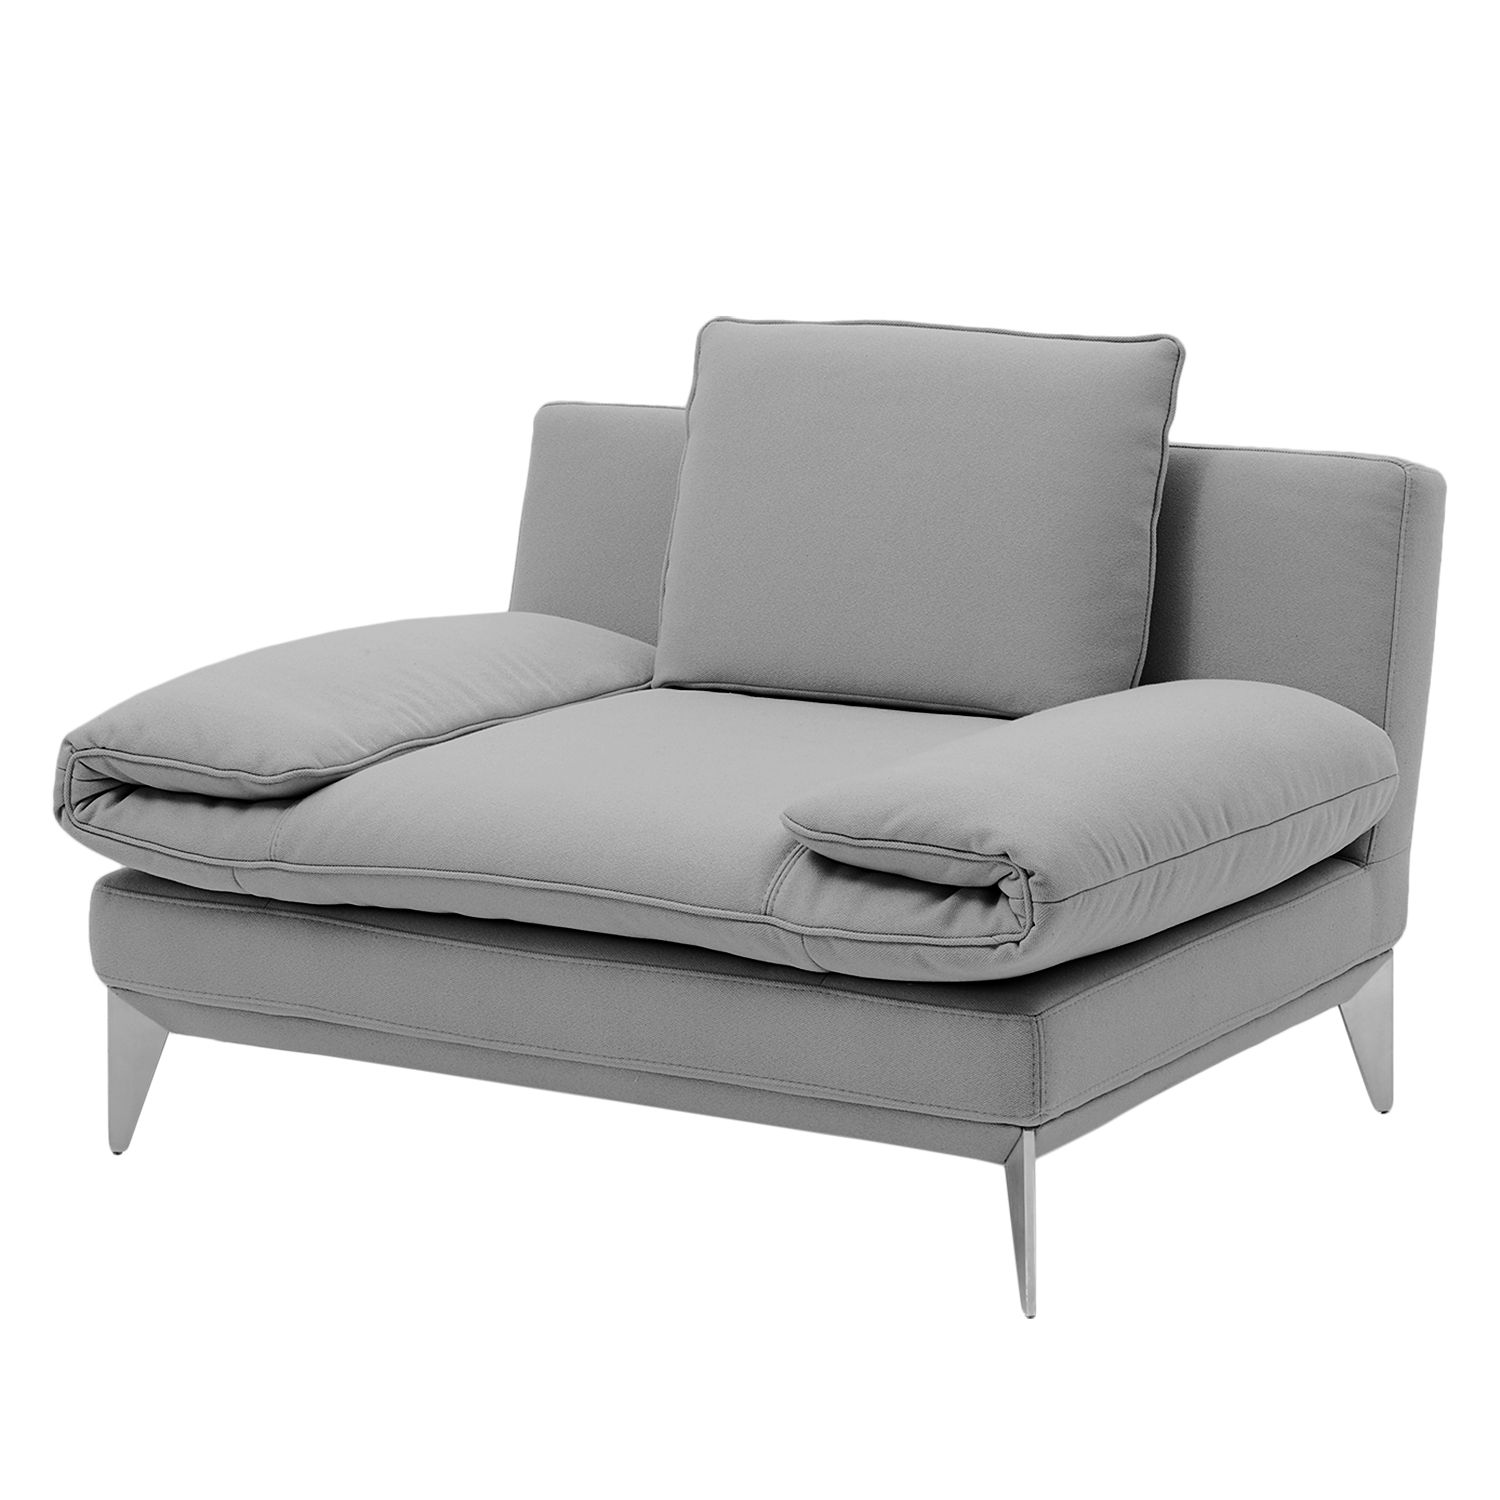 Fauteuil Smoky Bay - Tissu - Platine - Accoudoirs réglables, Fredriks